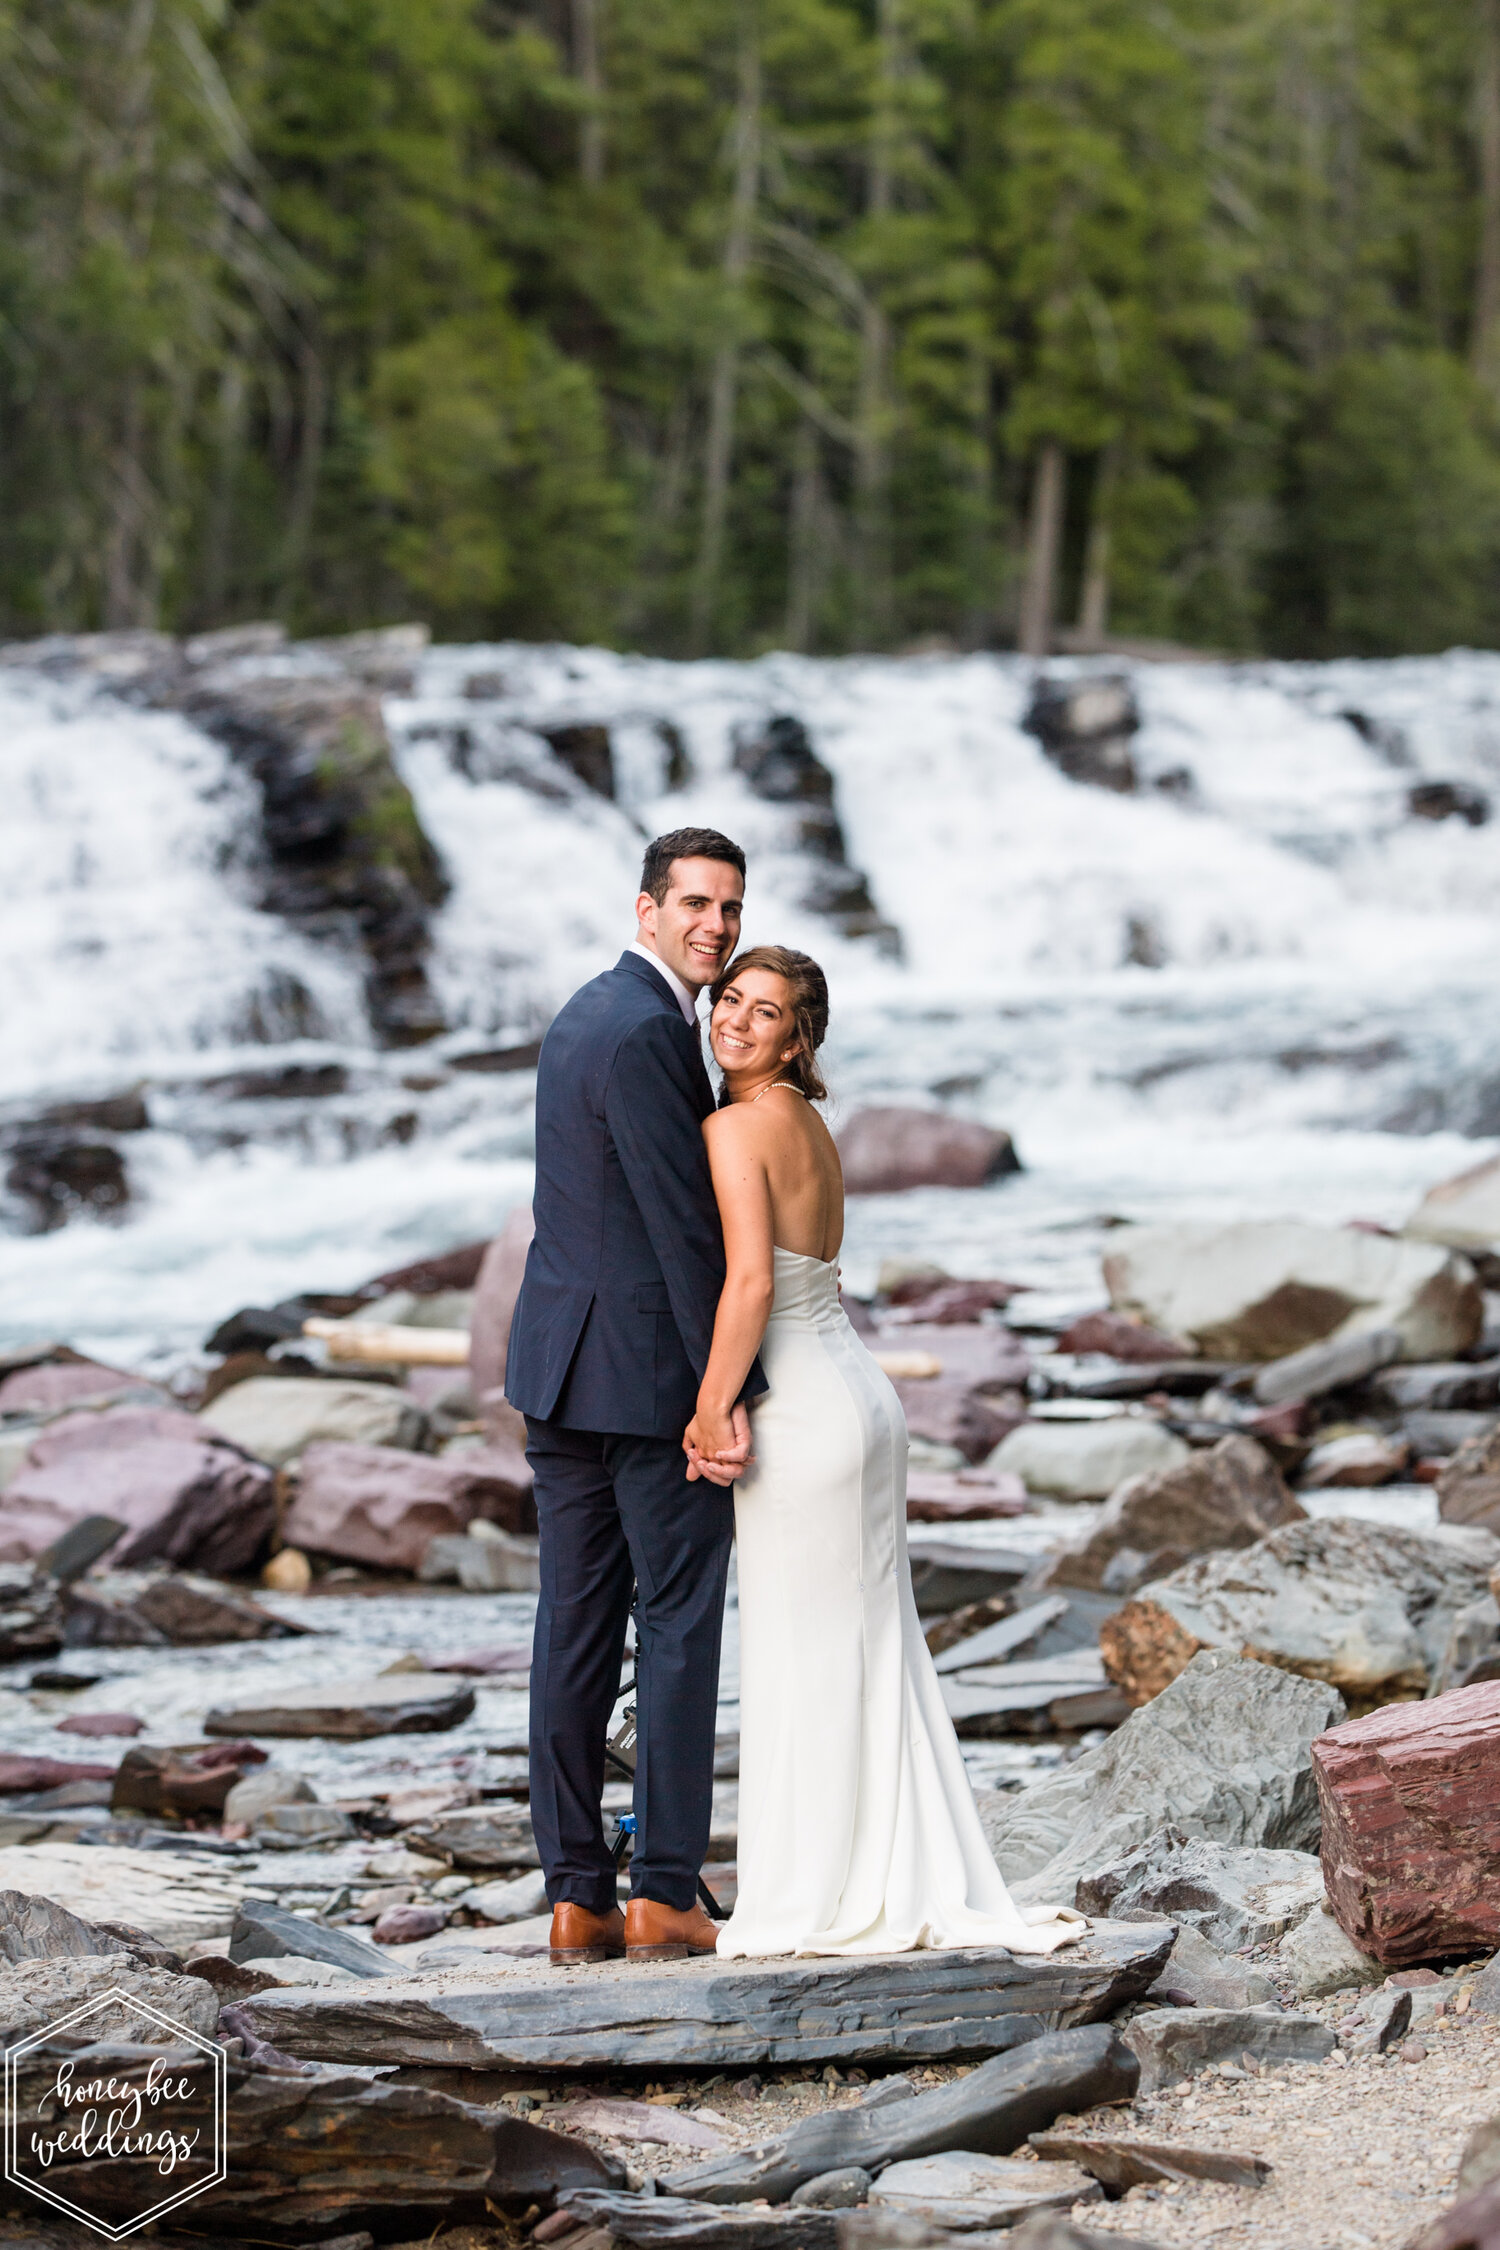 218Glacier National Park Wedding_Glacier Outdoor Center_Honeybee Weddings_Anna & Seth_July 21, 2019-1693.jpg